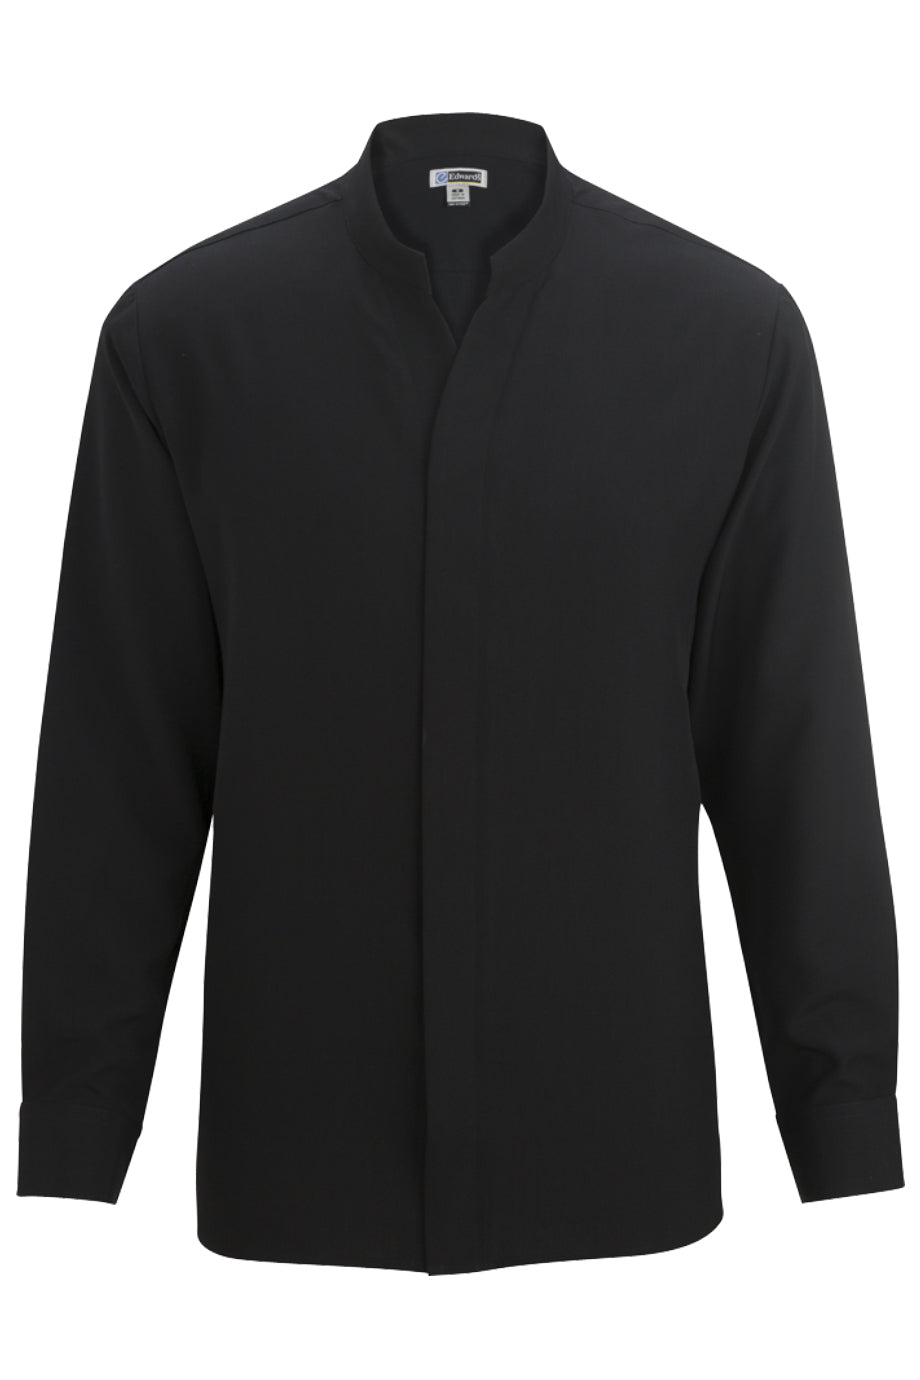 Black Edwards Mens Stand-Up Collar Shirt